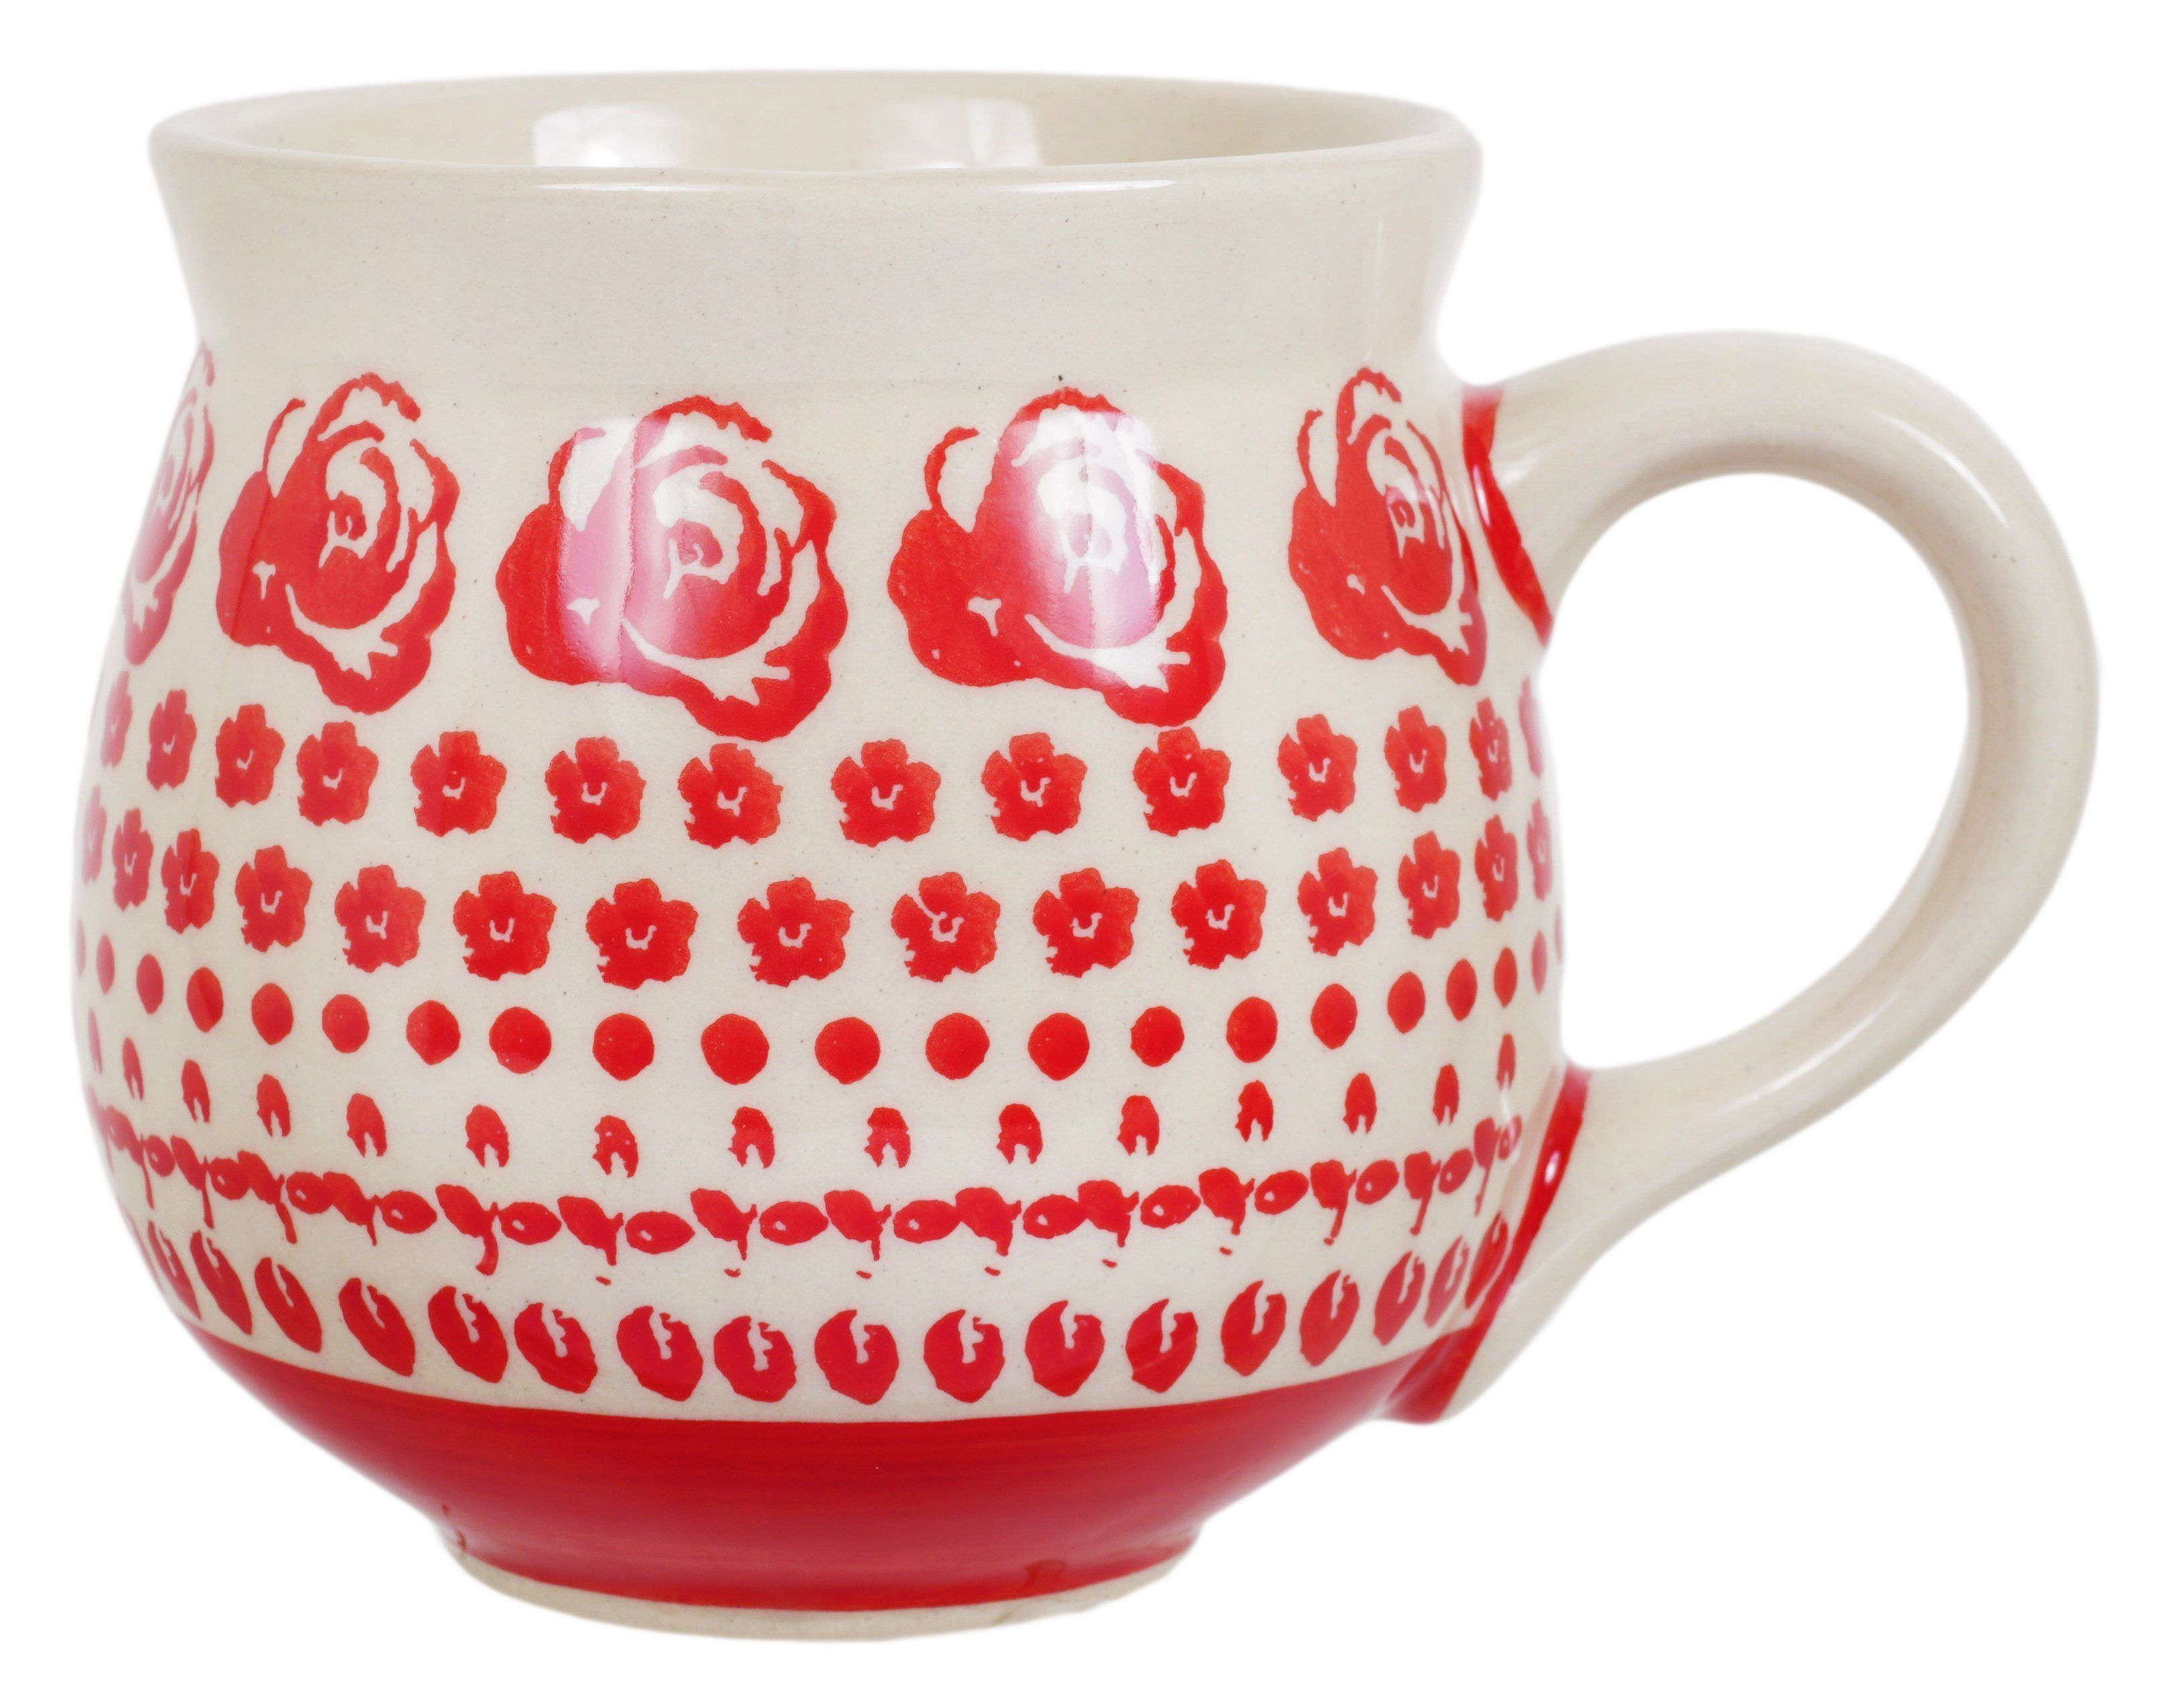 The Medium Belly Mug (Rose Garden) is part of Rose garden Products - Pattern Rose Garden Size 10 oz (1 25 cups), 5  wide (including handle), 3 5  tall The 10 oz  Medium Belly Mug is the perfectly shaped coffee cup  Starting your day with a belly mug in an exquisite Polish pottery design jumpstarts your day on a high note! Item  K090